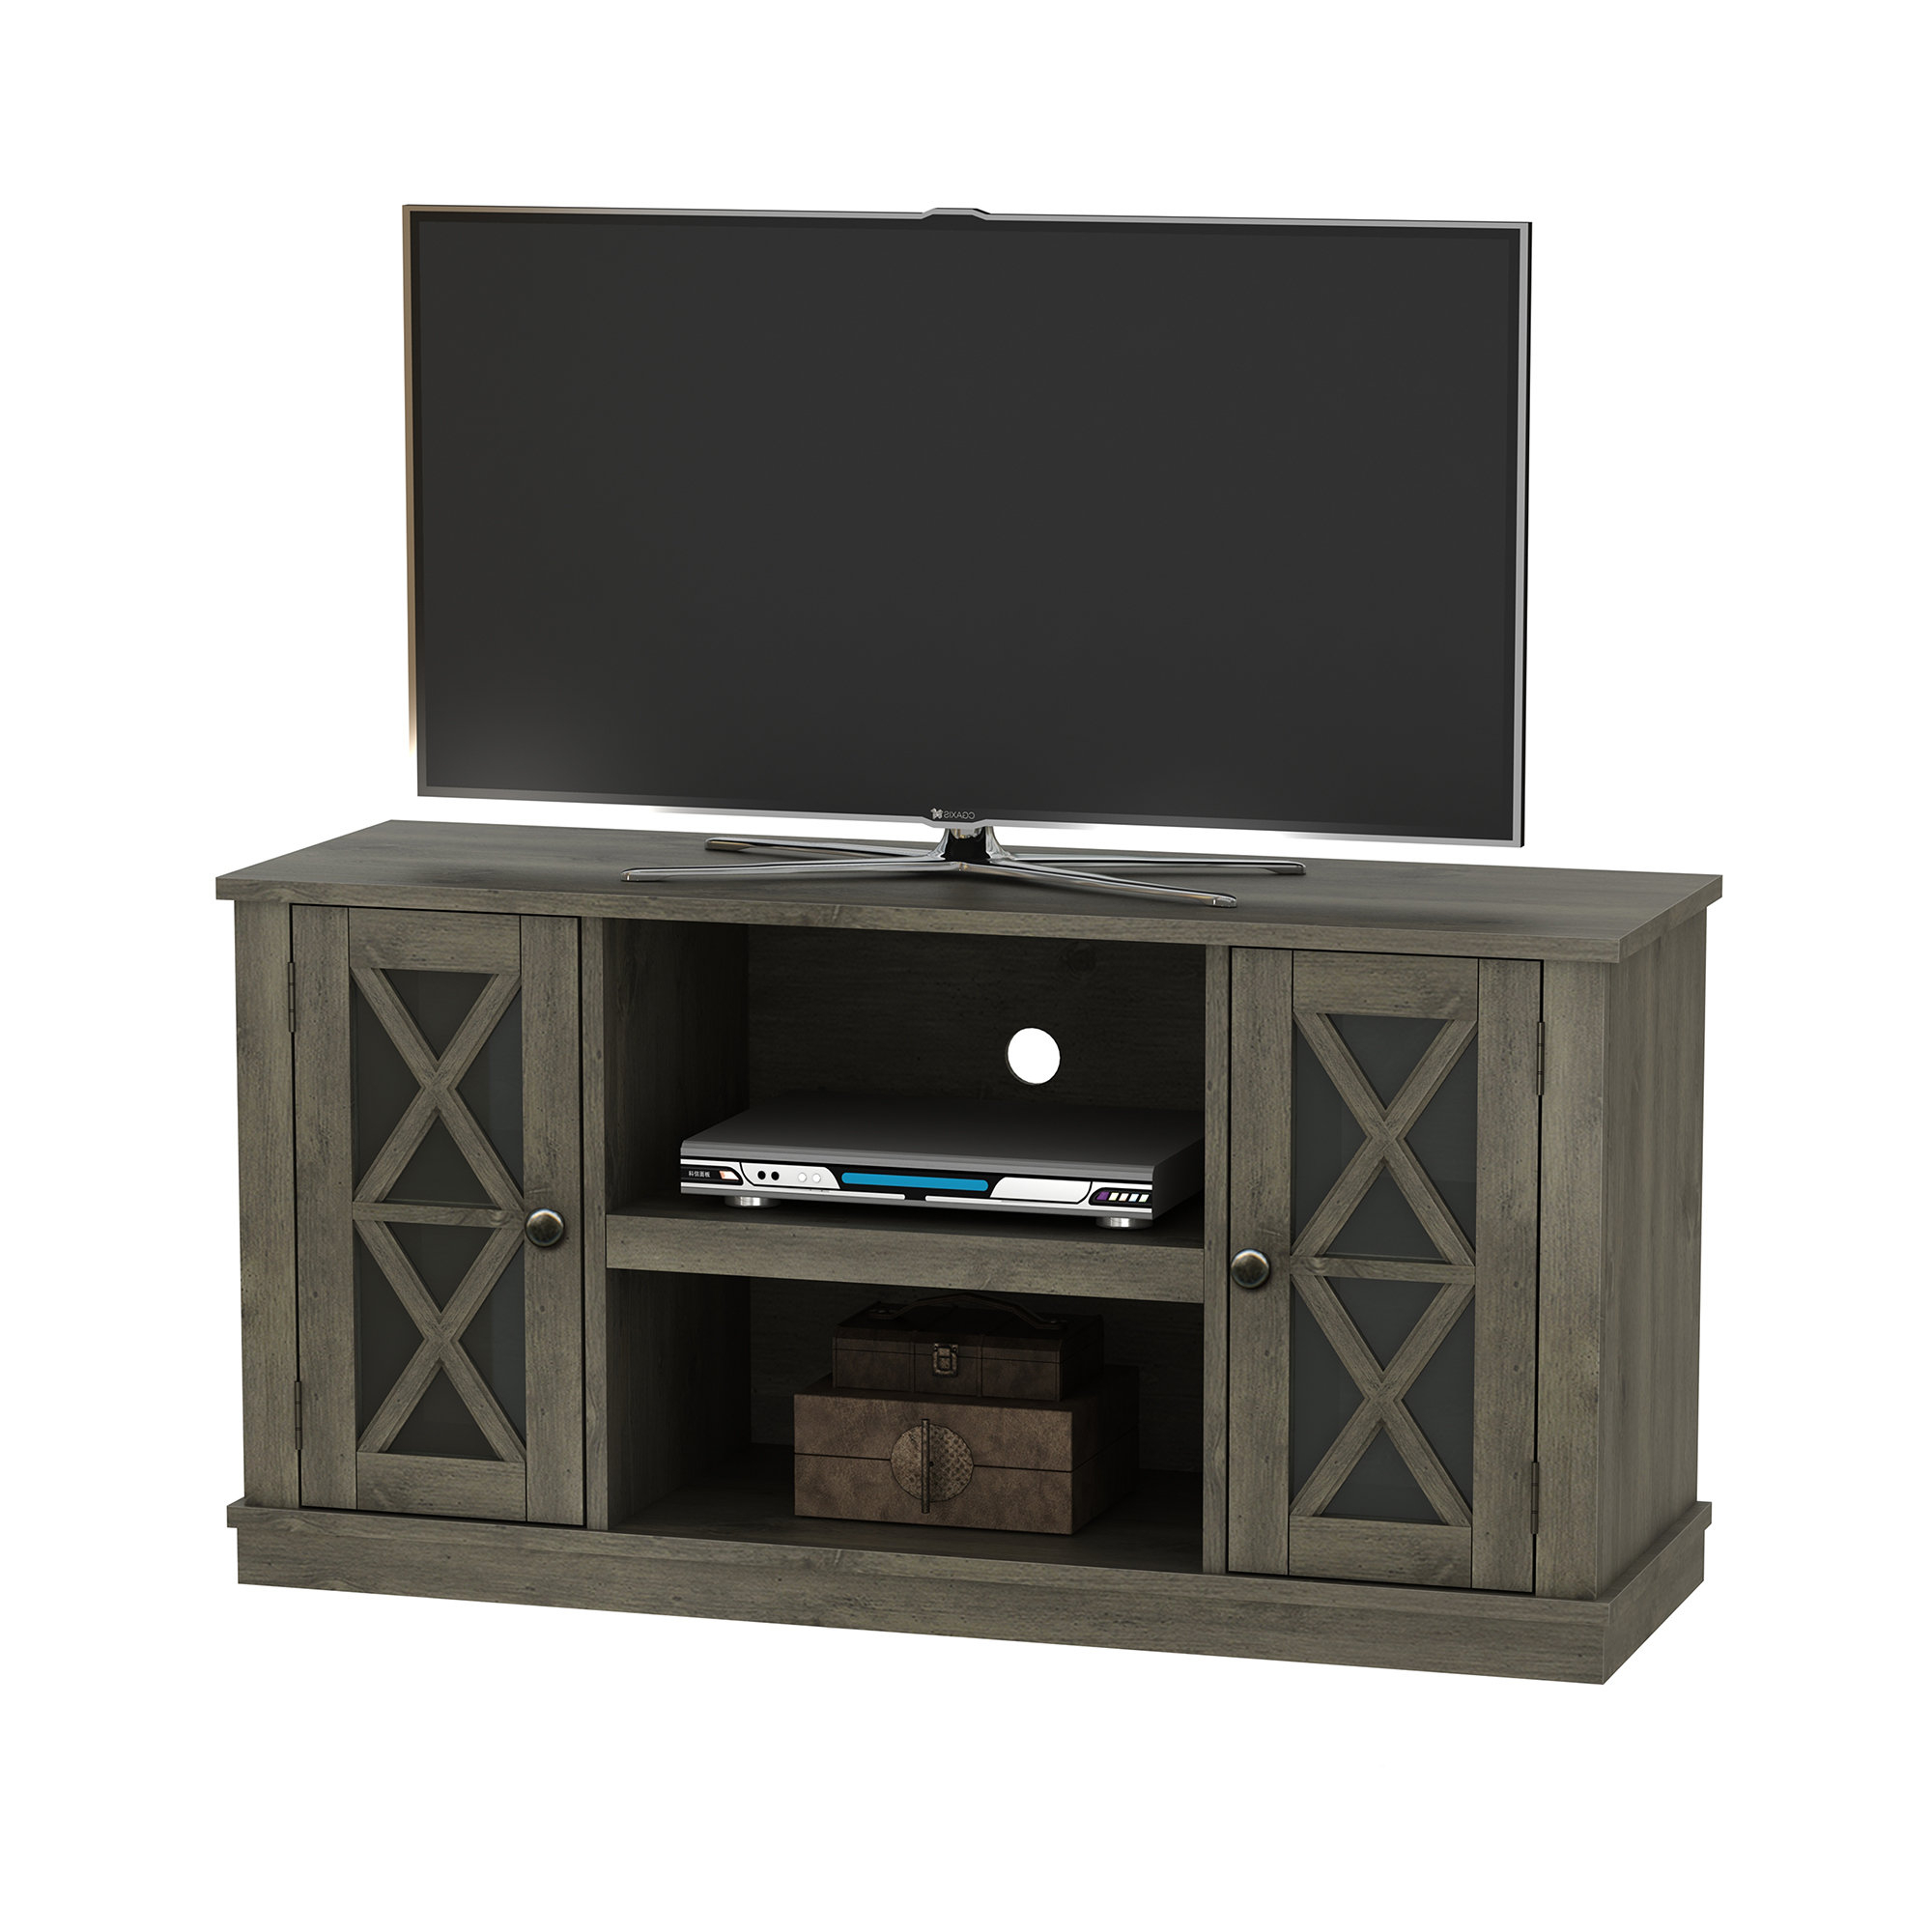 Grey Tv Stands | Birch Lane With Sinclair Grey 74 Inch Tv Stands (View 4 of 20)